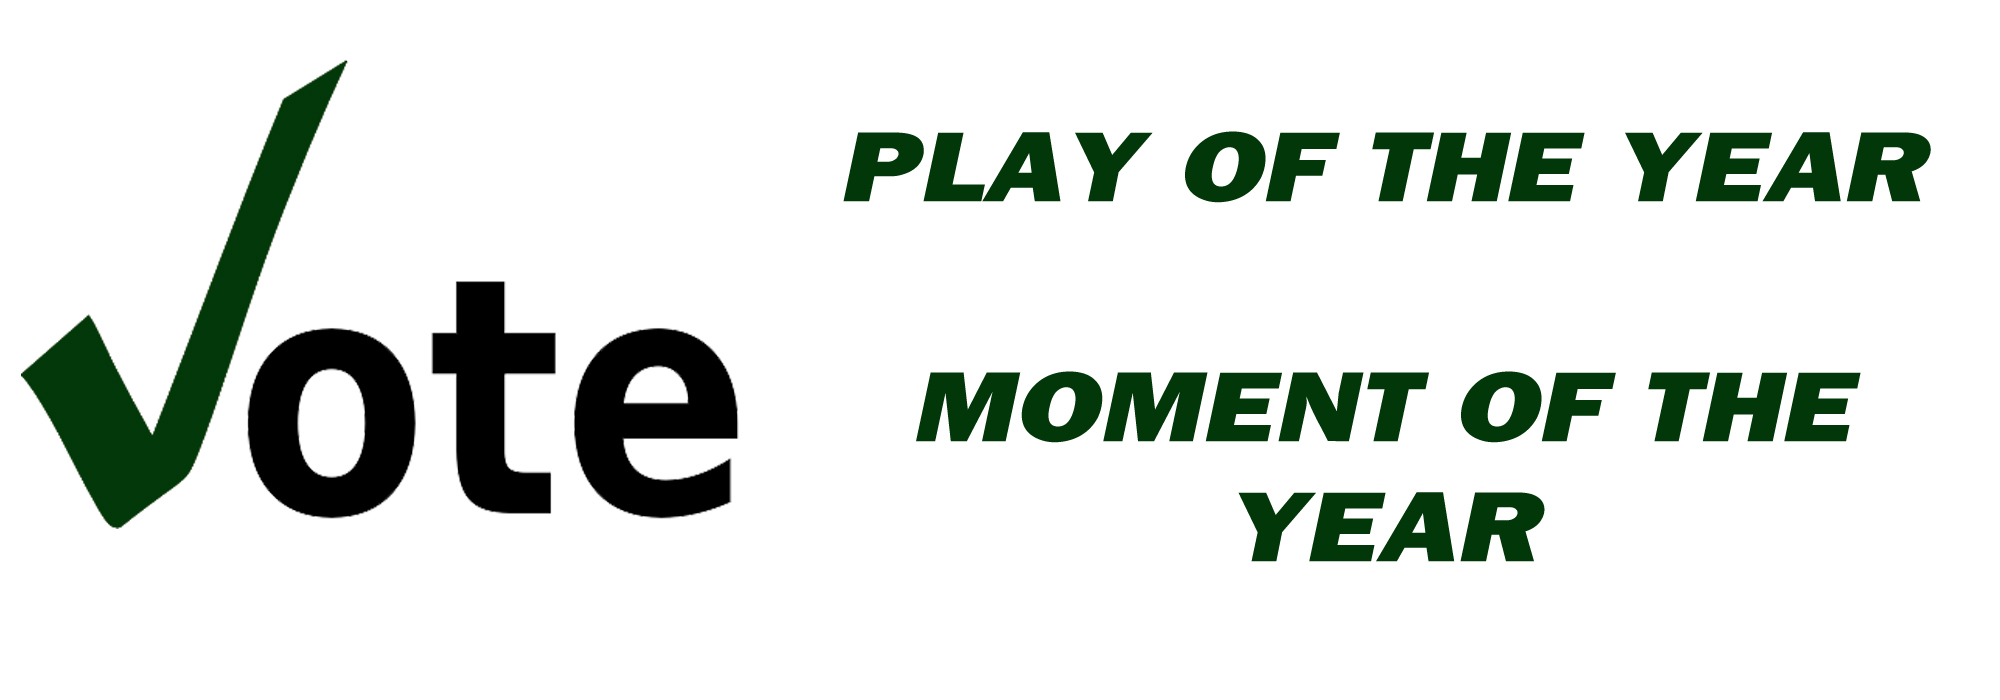 Vote For 2018-19 Play of the Year, Moment of the Year